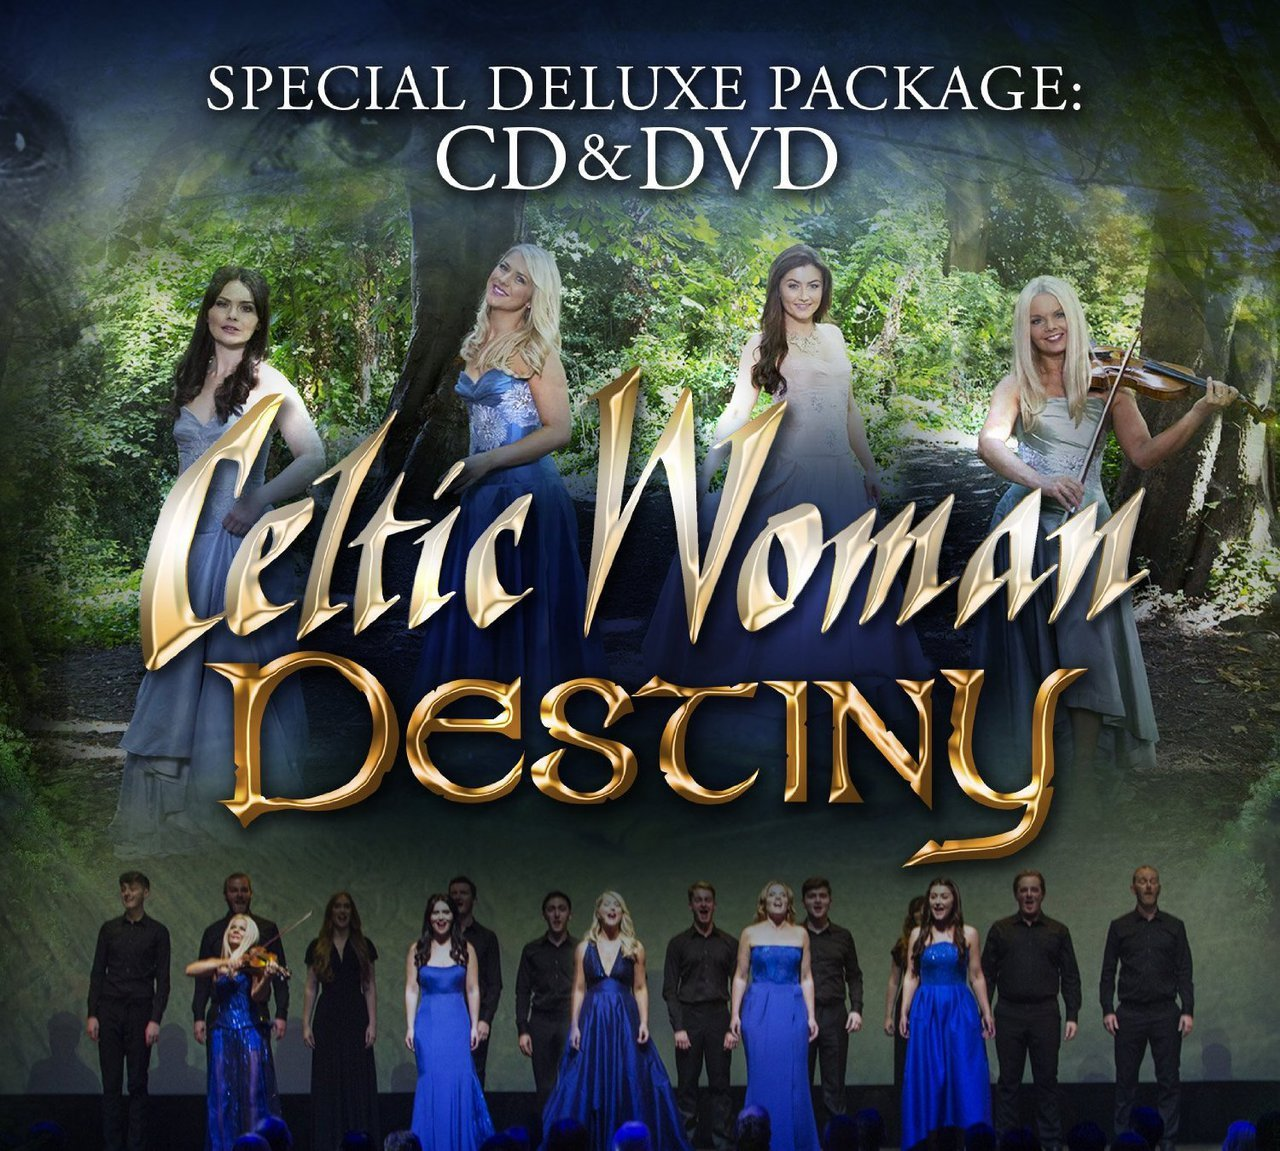 Destiny by celtic woman   cd   dvd deluxe